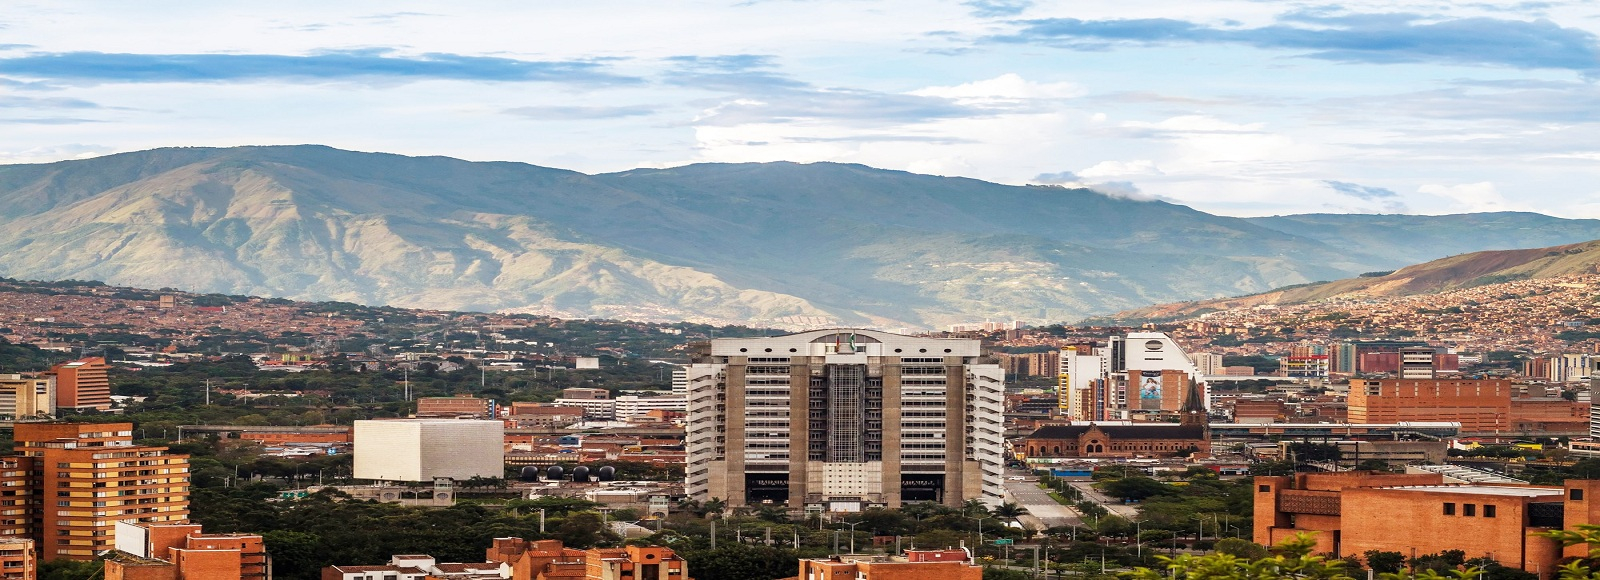 Hotel reservation in Medellin Hotel offers in Medellin